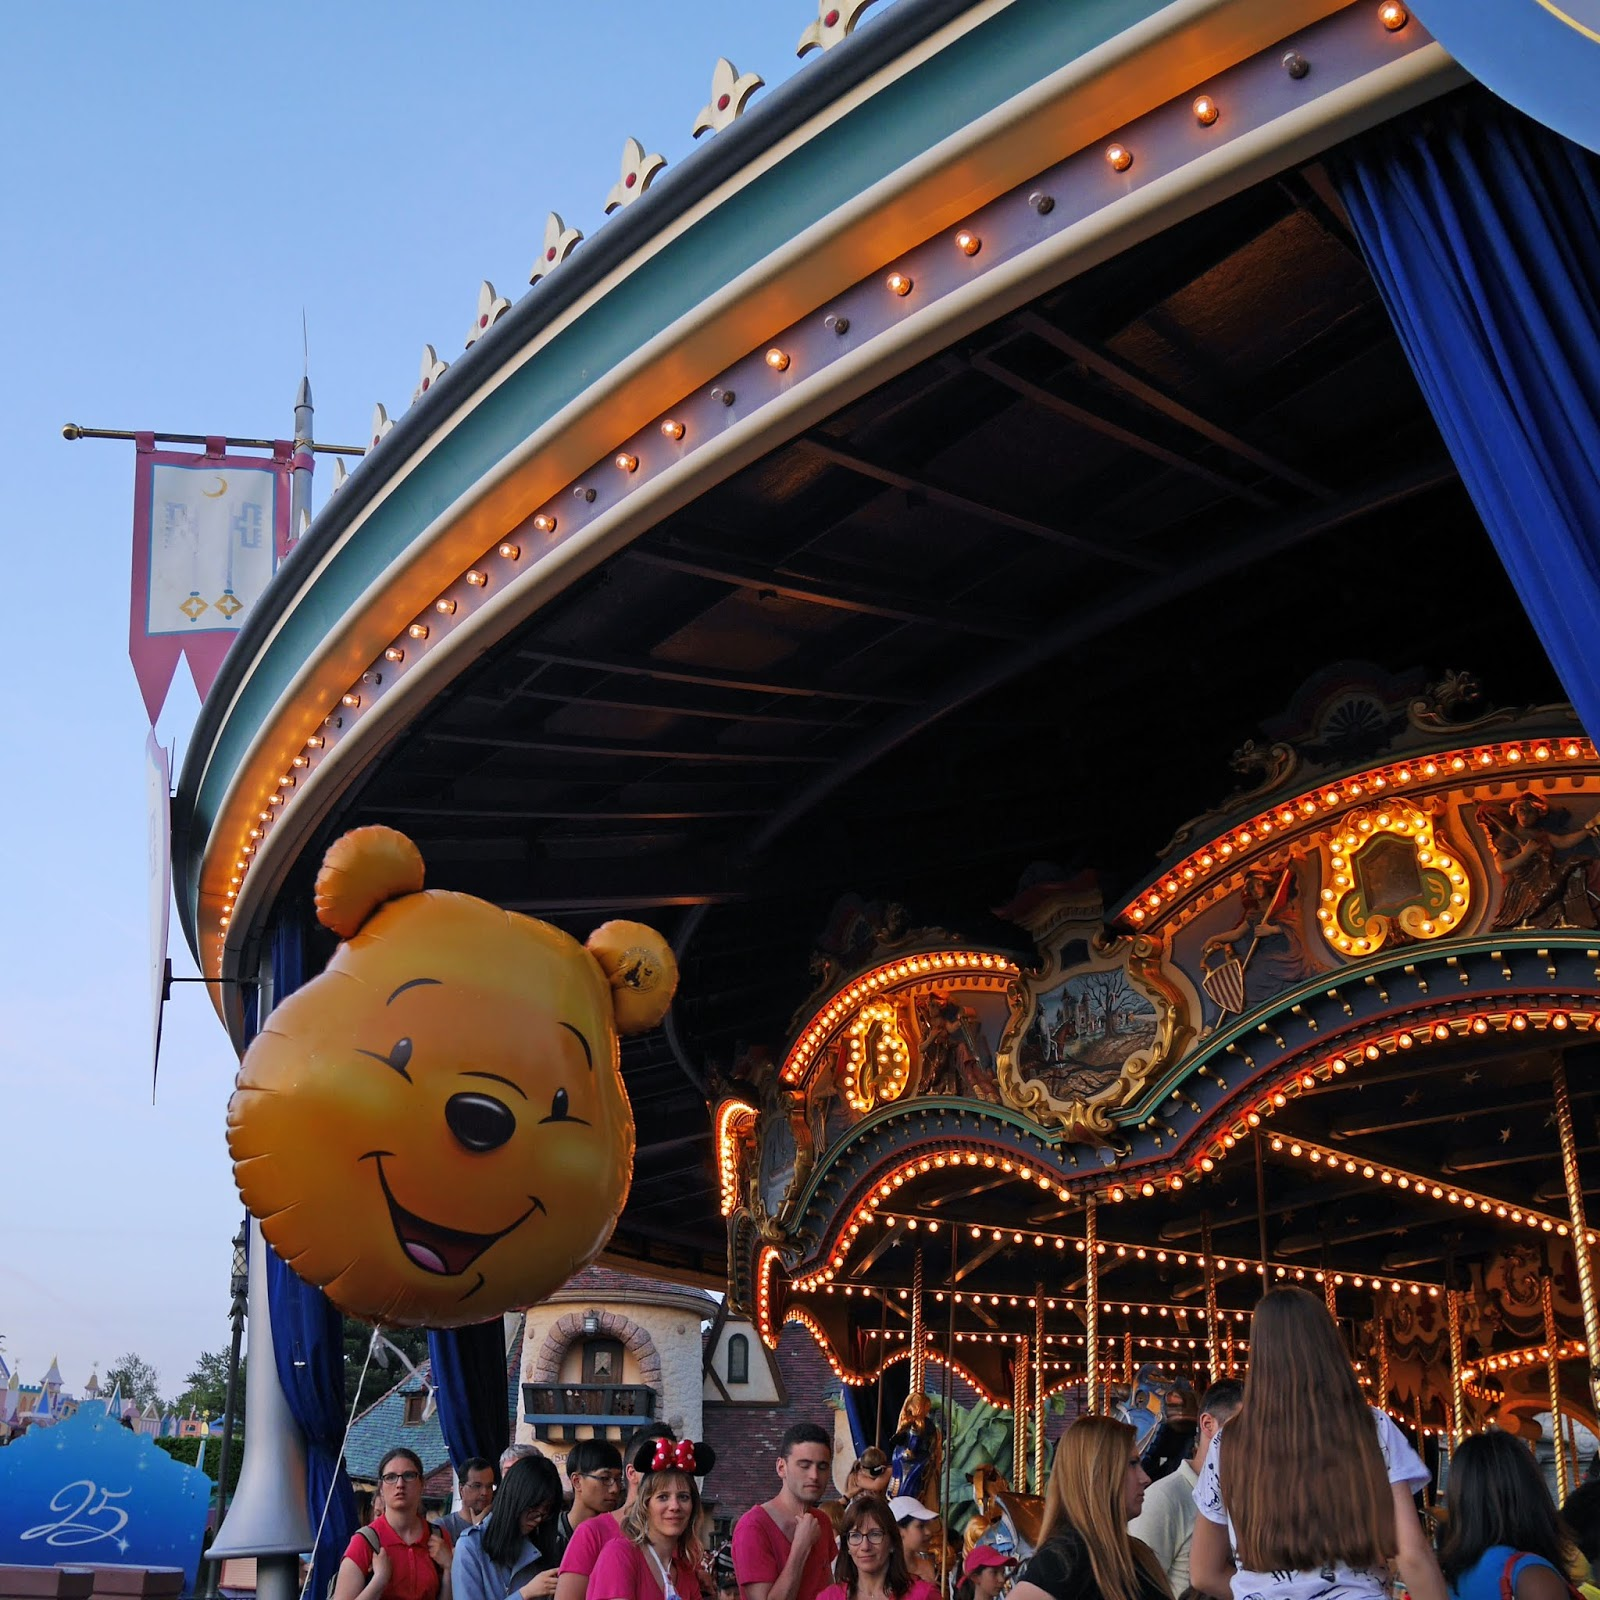 A Winnie the Pooh balloon next to the Carousel at Disneyland Paris